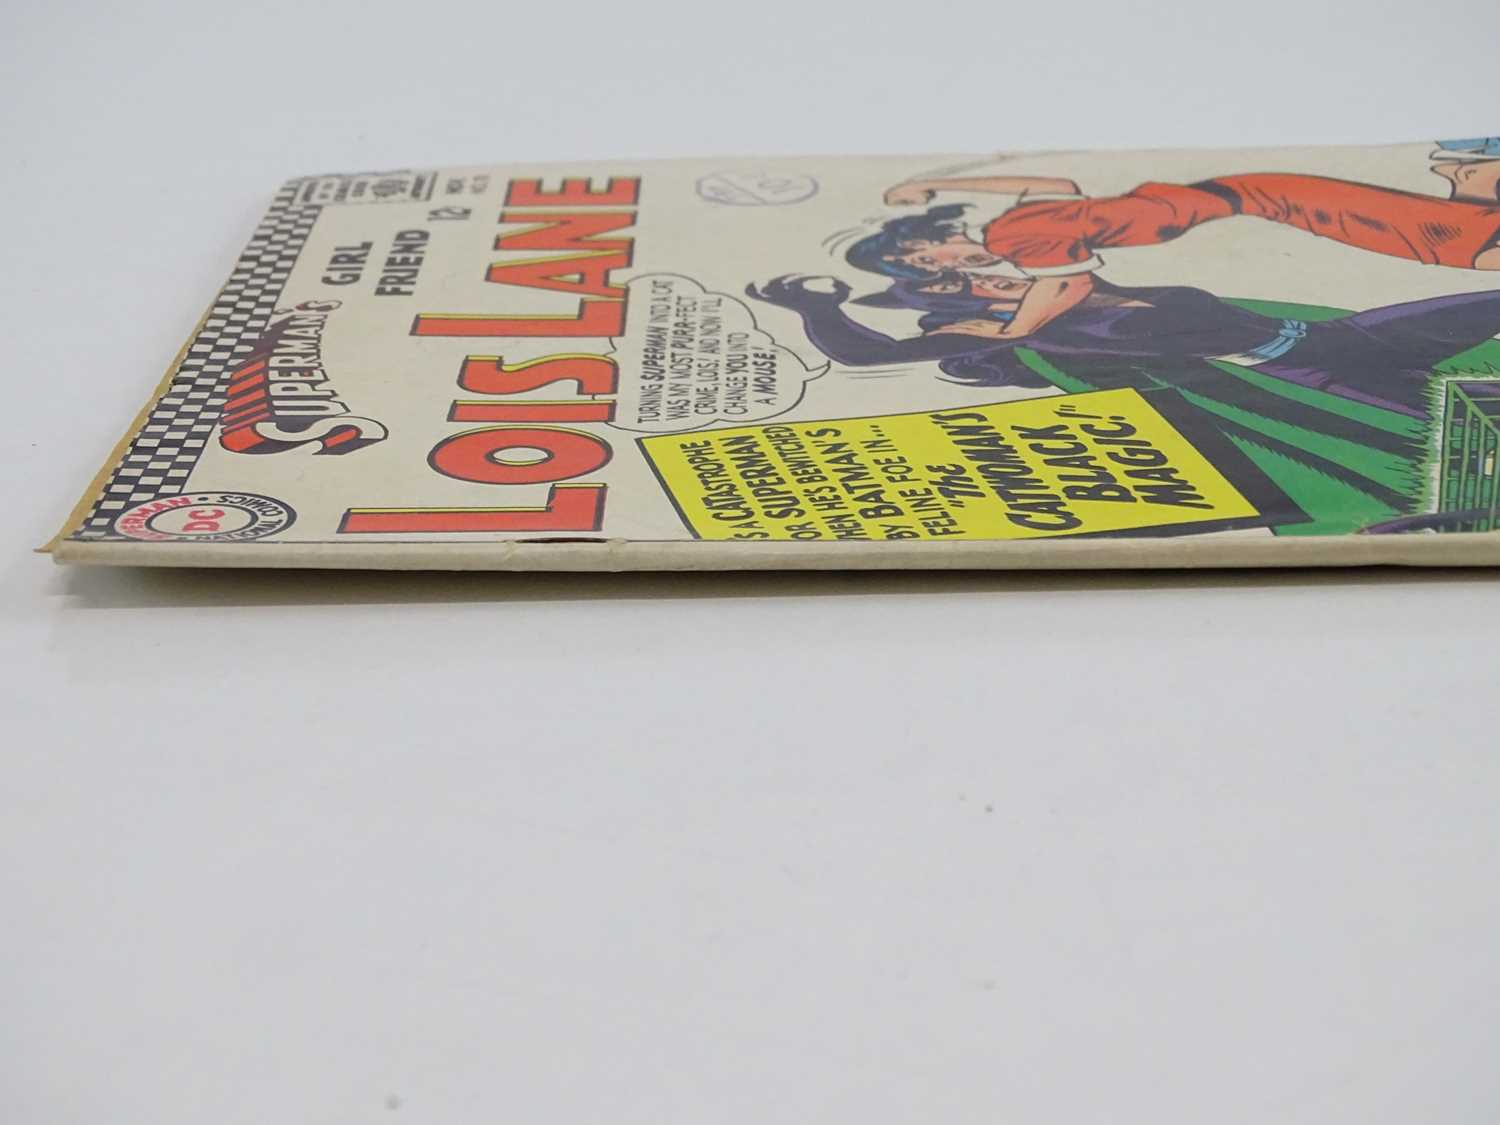 SUPERMAN'S GIRLFRIEND: LOIS LANE #70 - (1966 - DC - UK Cover Price) - KEY Book - First Silver Age - Image 9 of 10